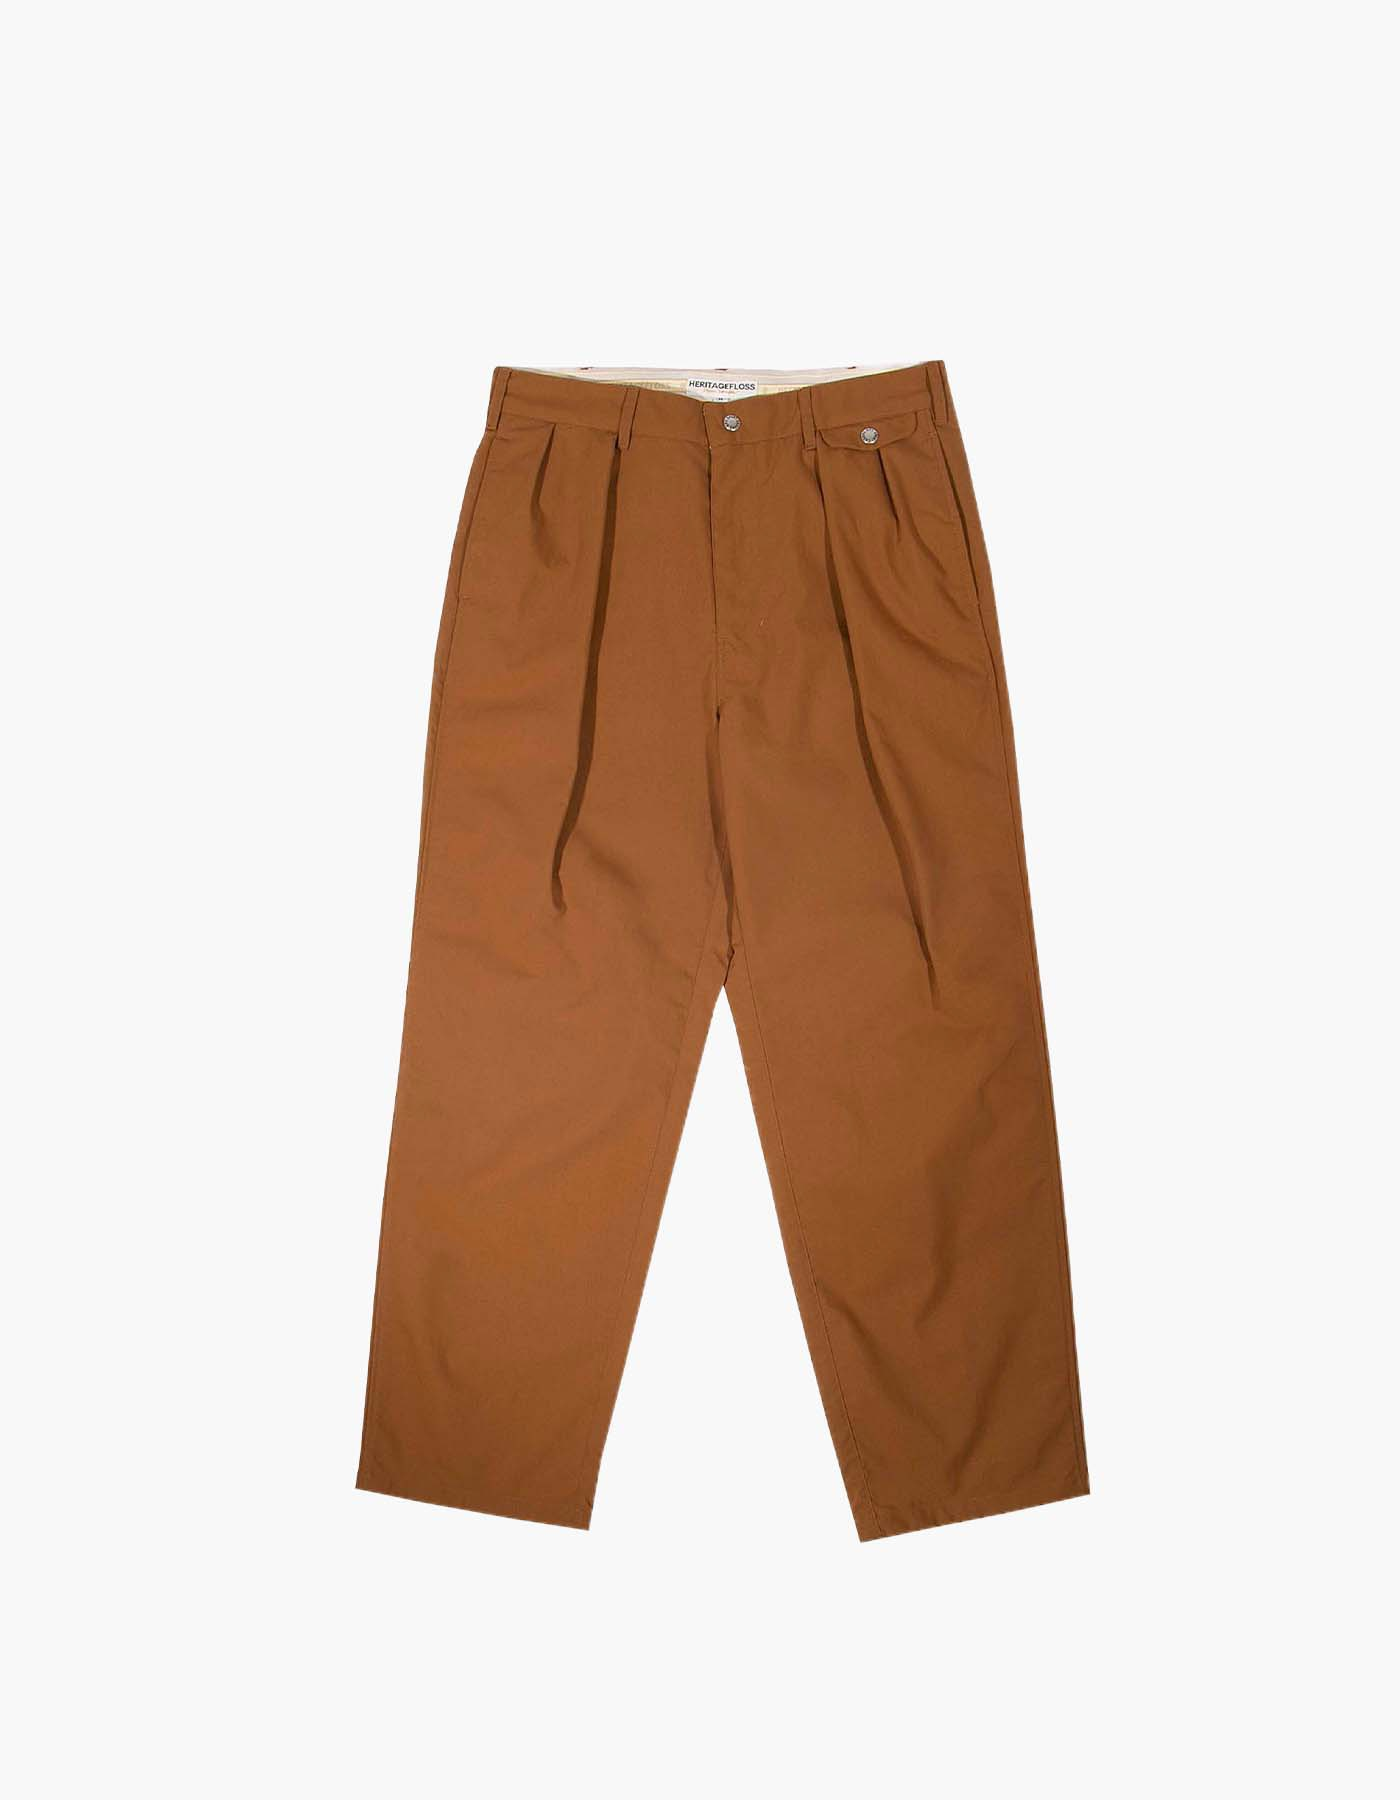 QUICK-DRYING NYLON CHINO PANTS / CAMEL